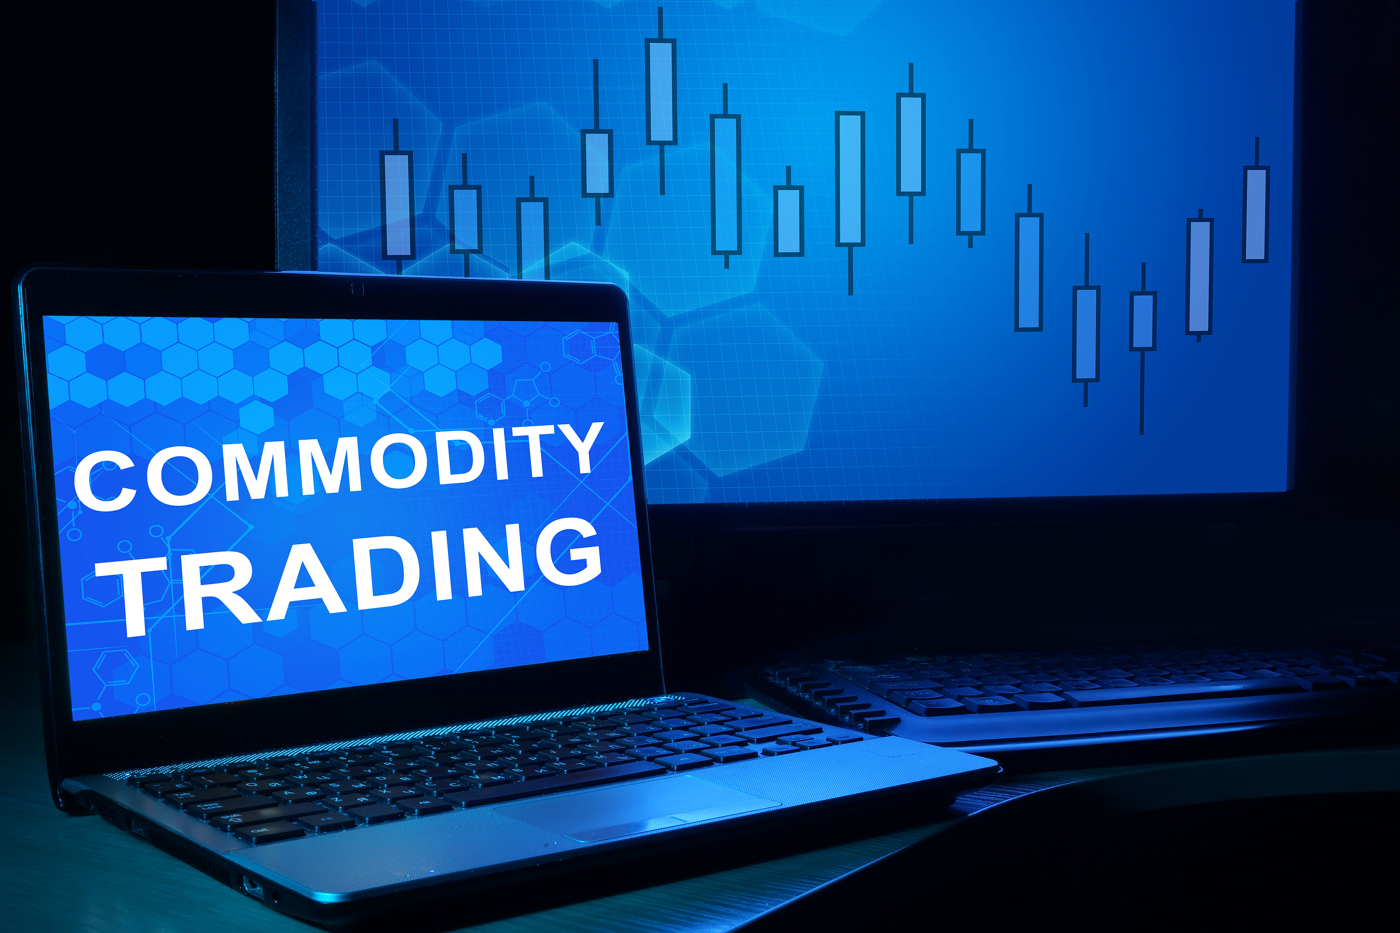 Popular commodities for commodity options